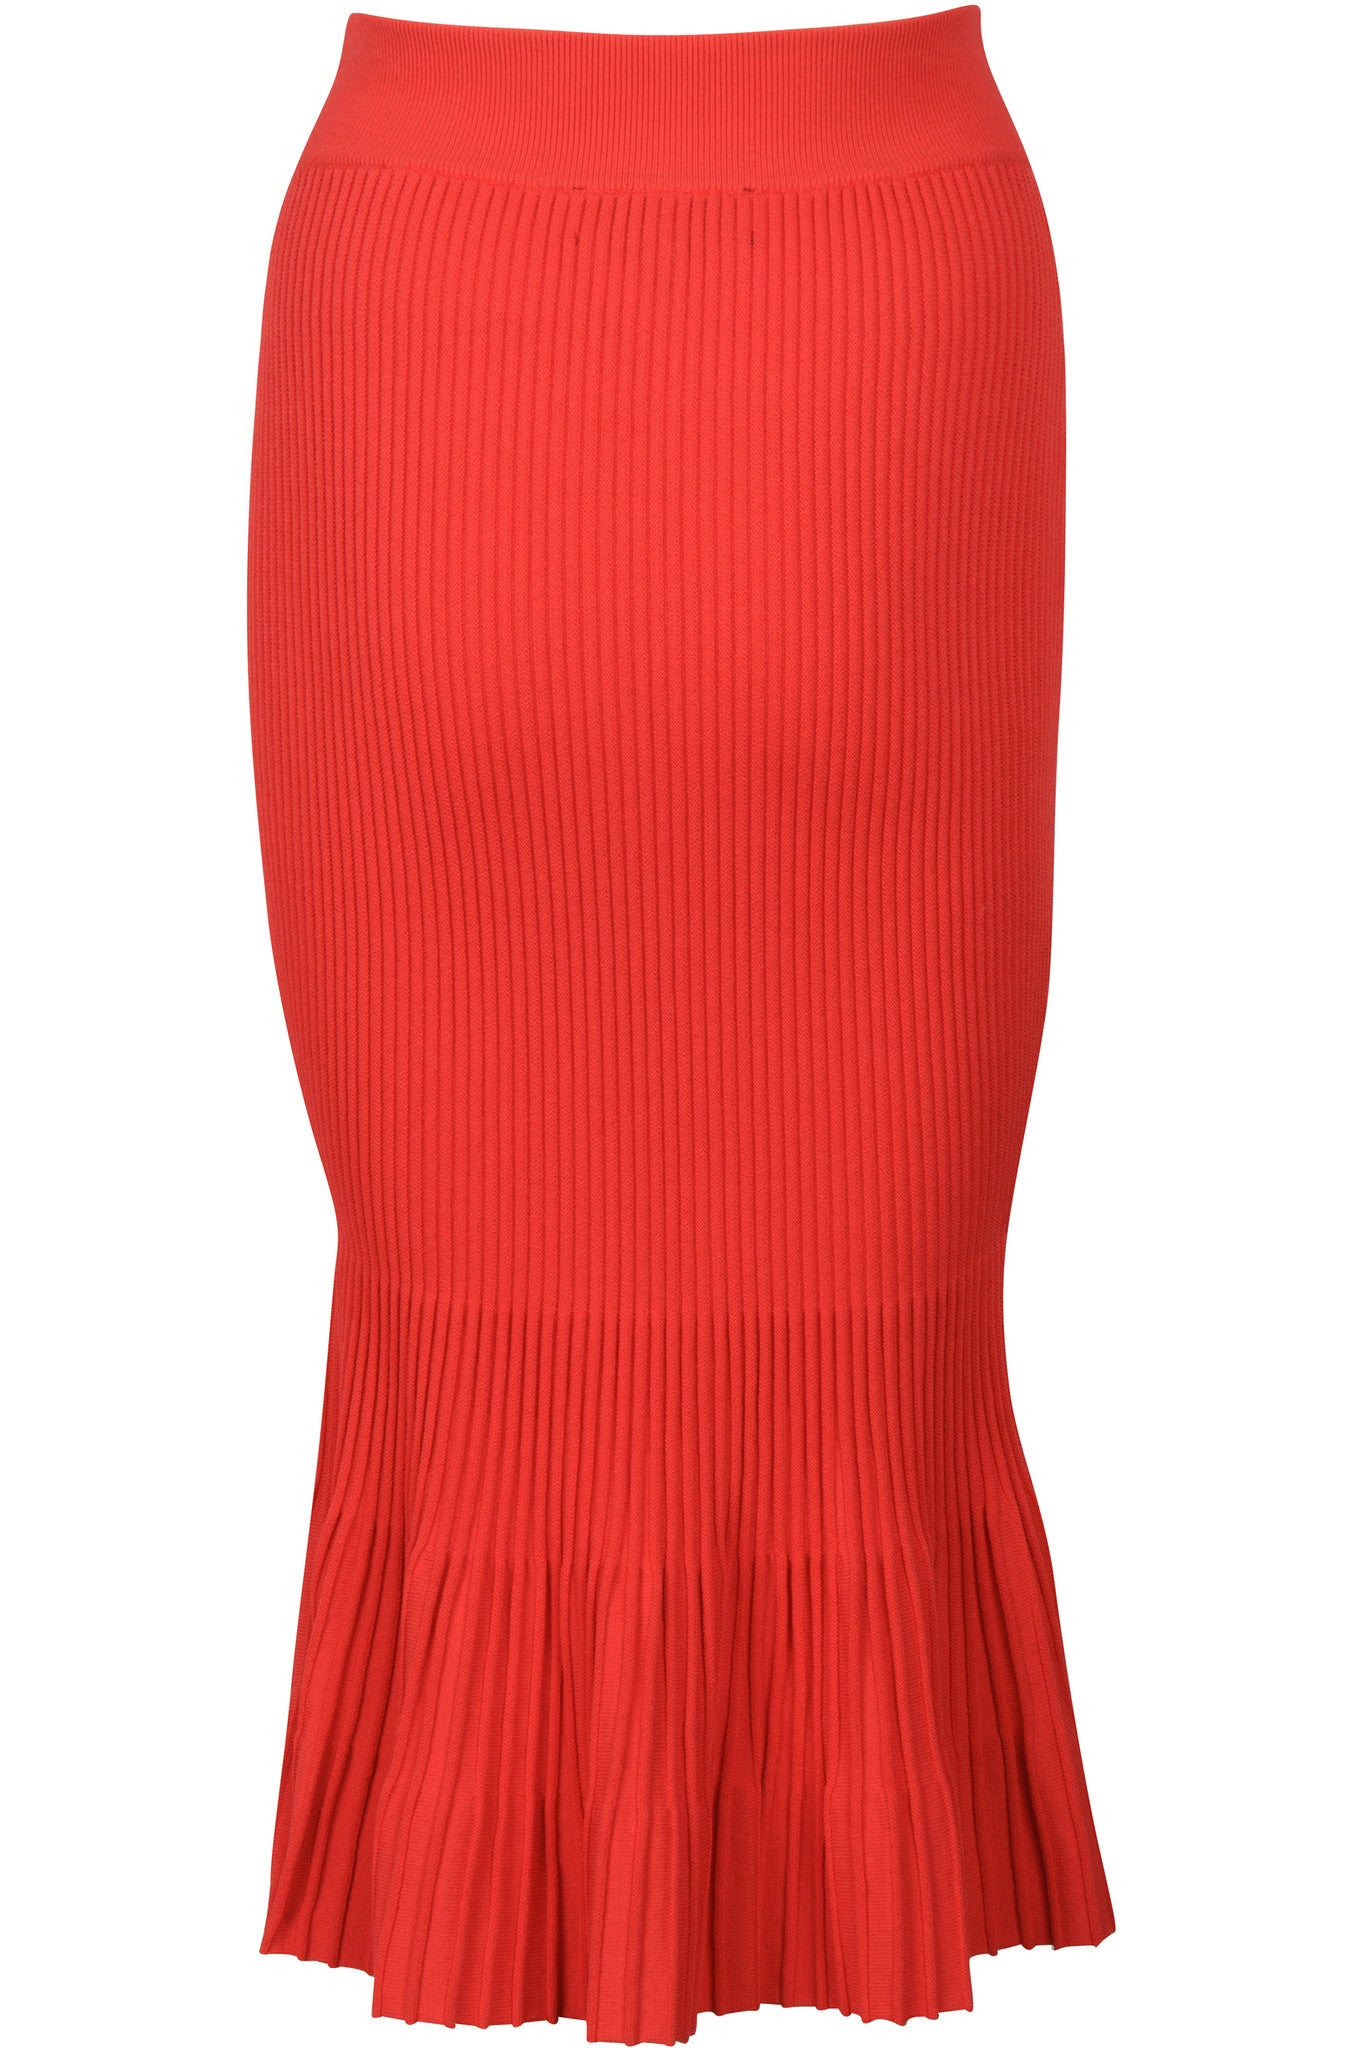 OTTOMAN MERMAID SKIRT RED SKIRTS by KENDALL + KYLIE